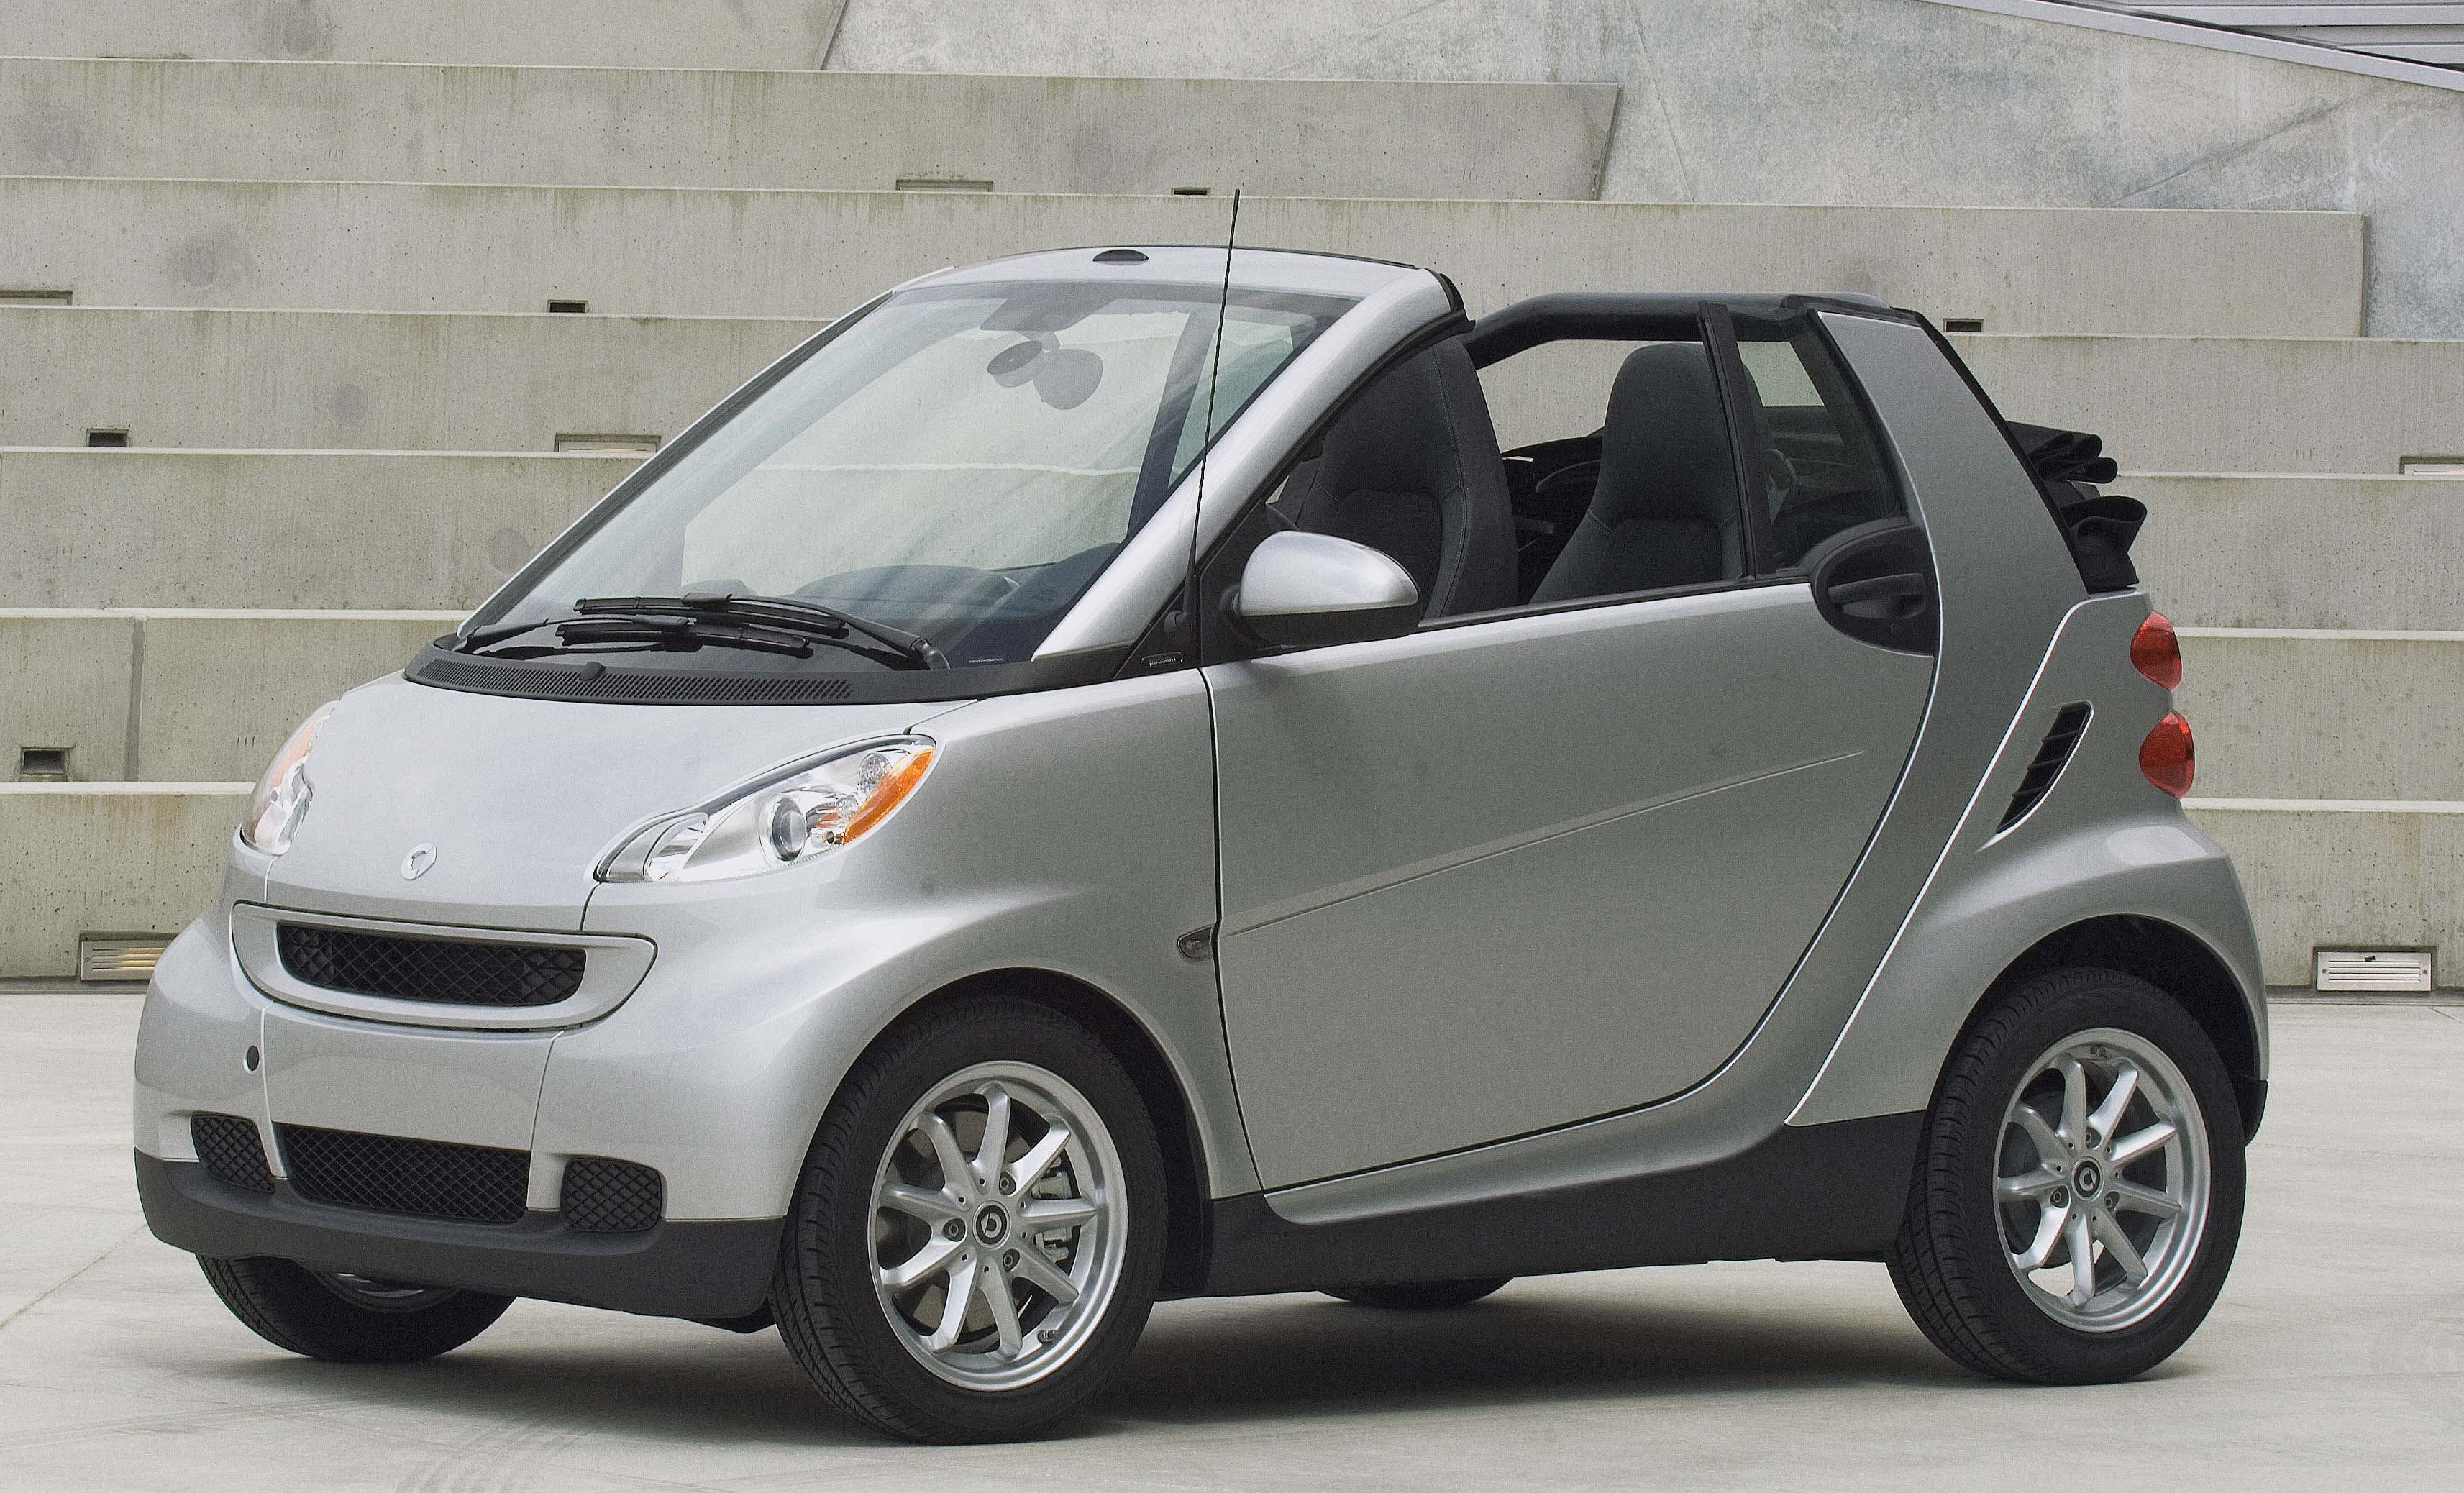 Is the smart car smart